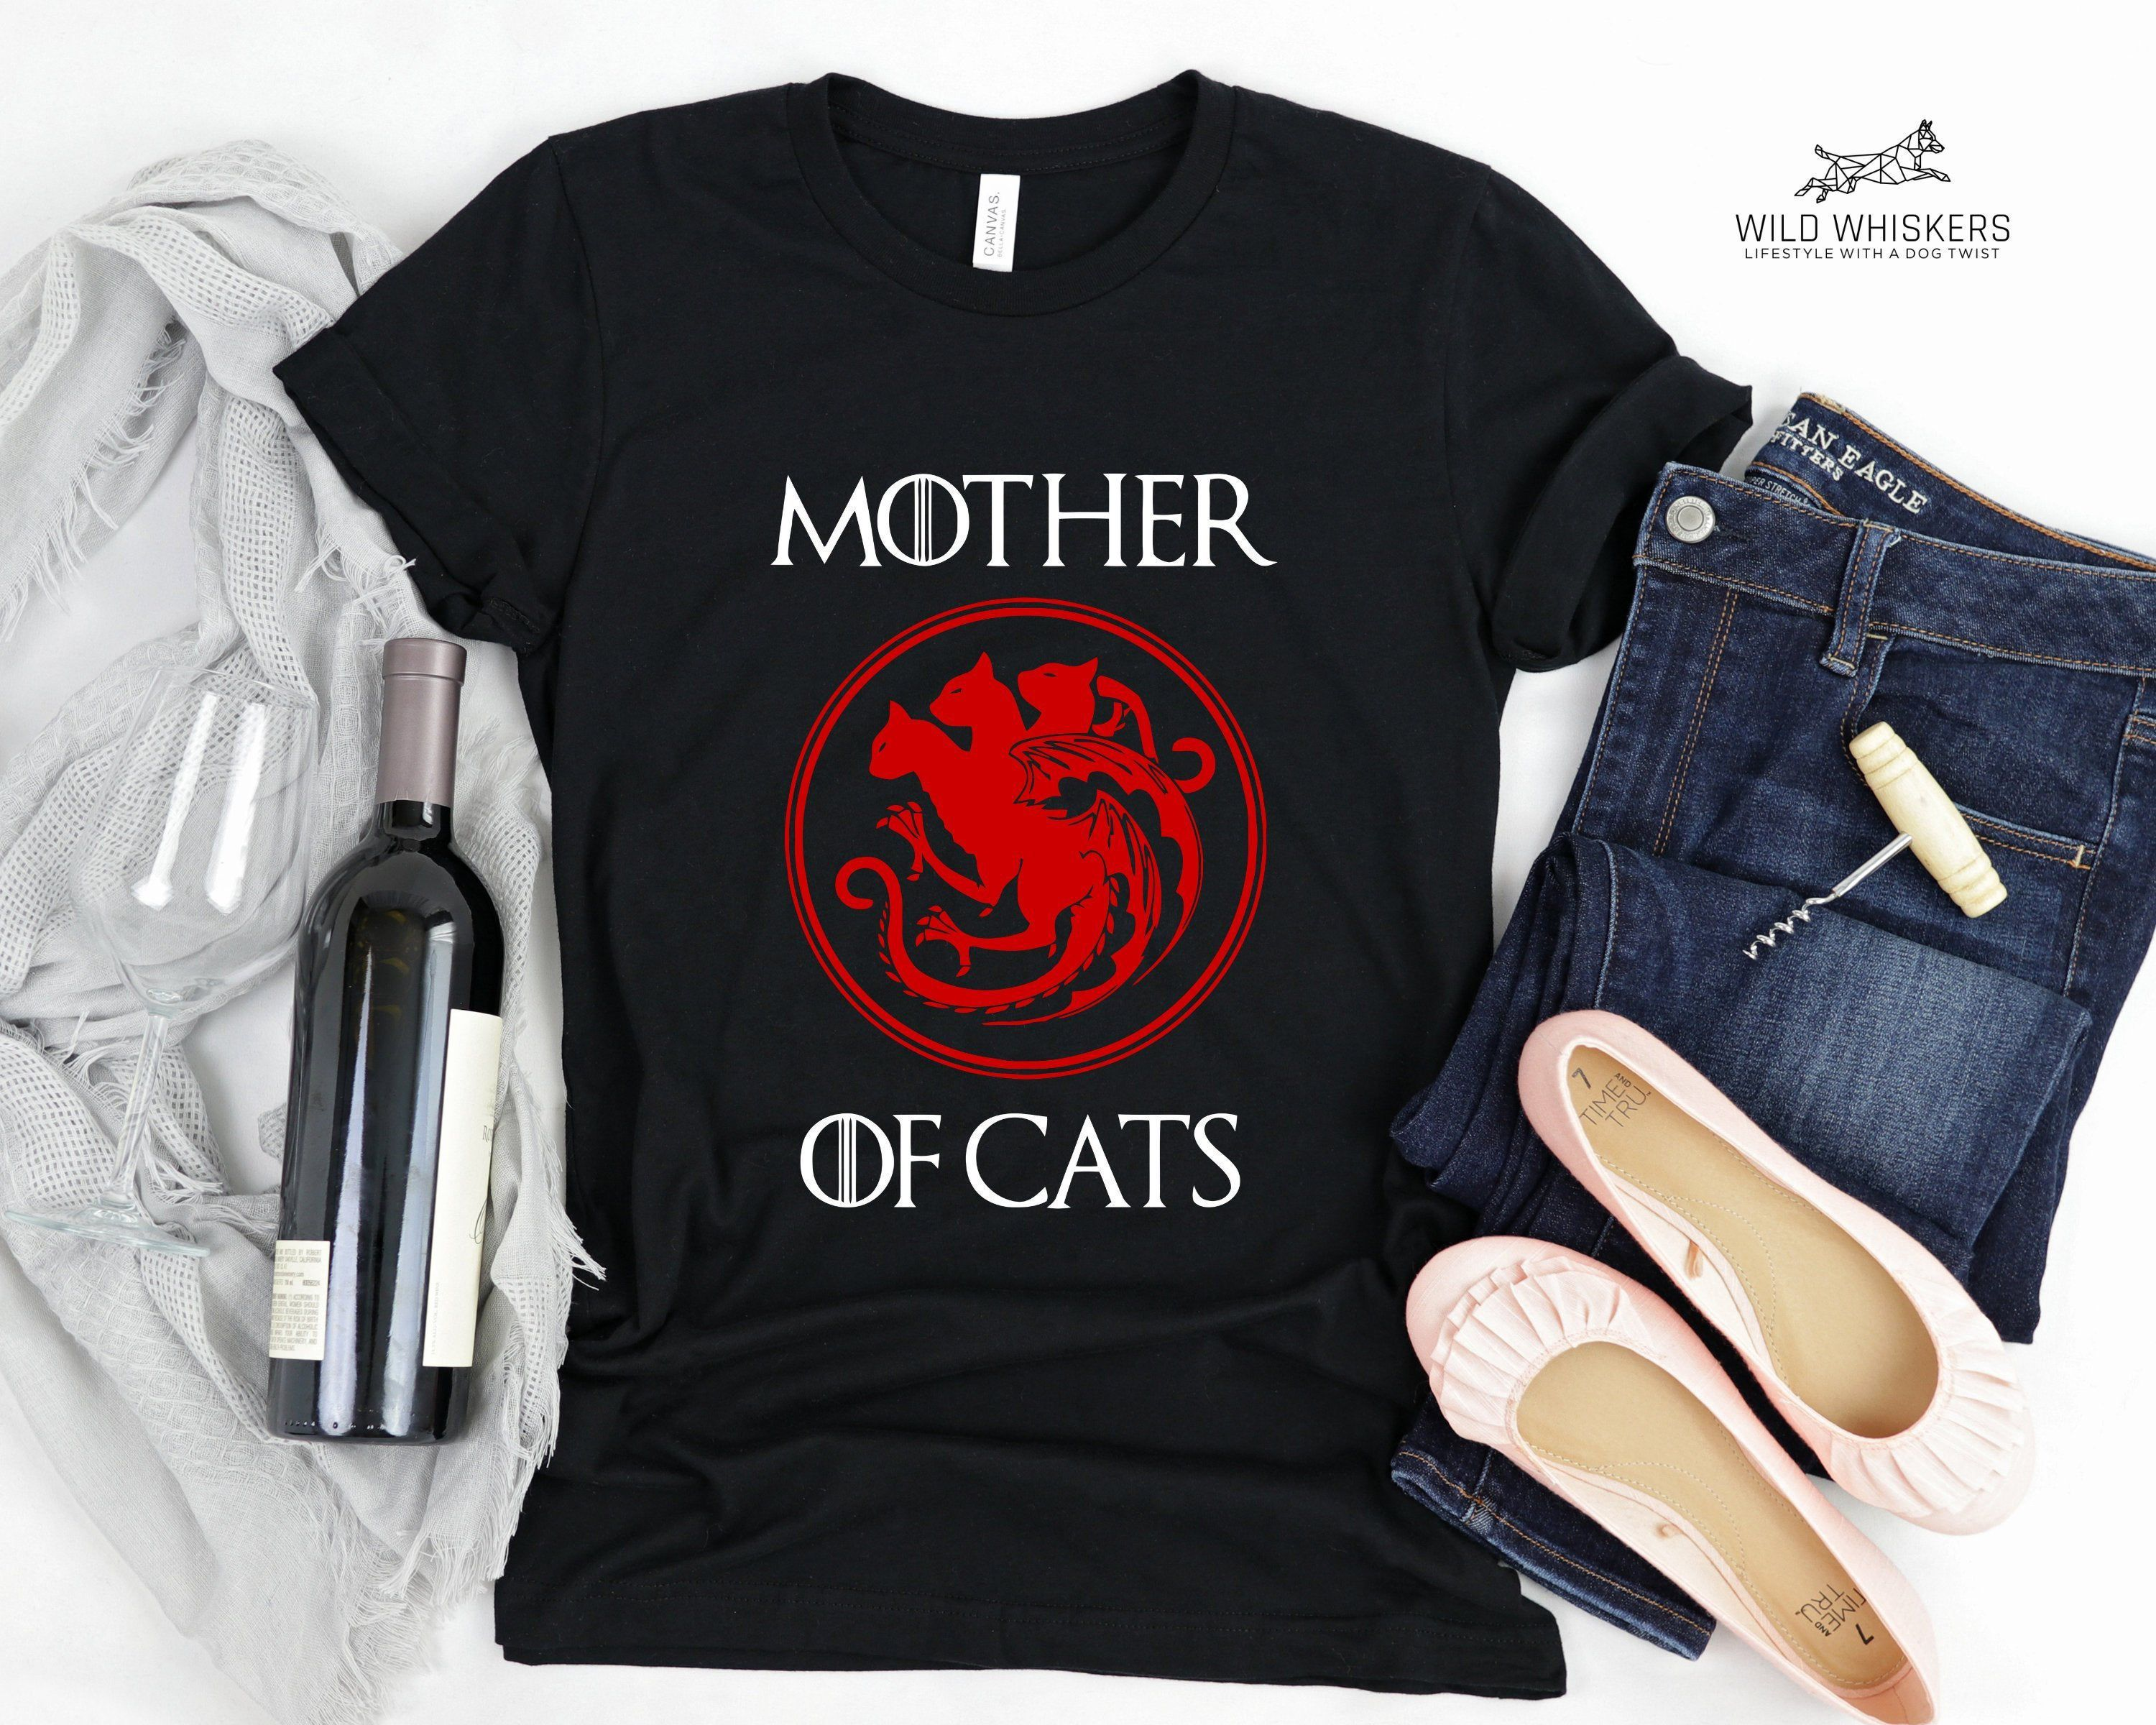 Mother of Cats Shirt - Funny Gifts For Cat Lovers Game of Thrones T-Shirt - Khaleesi Daenerys Targaryen Daenerys Stormborn